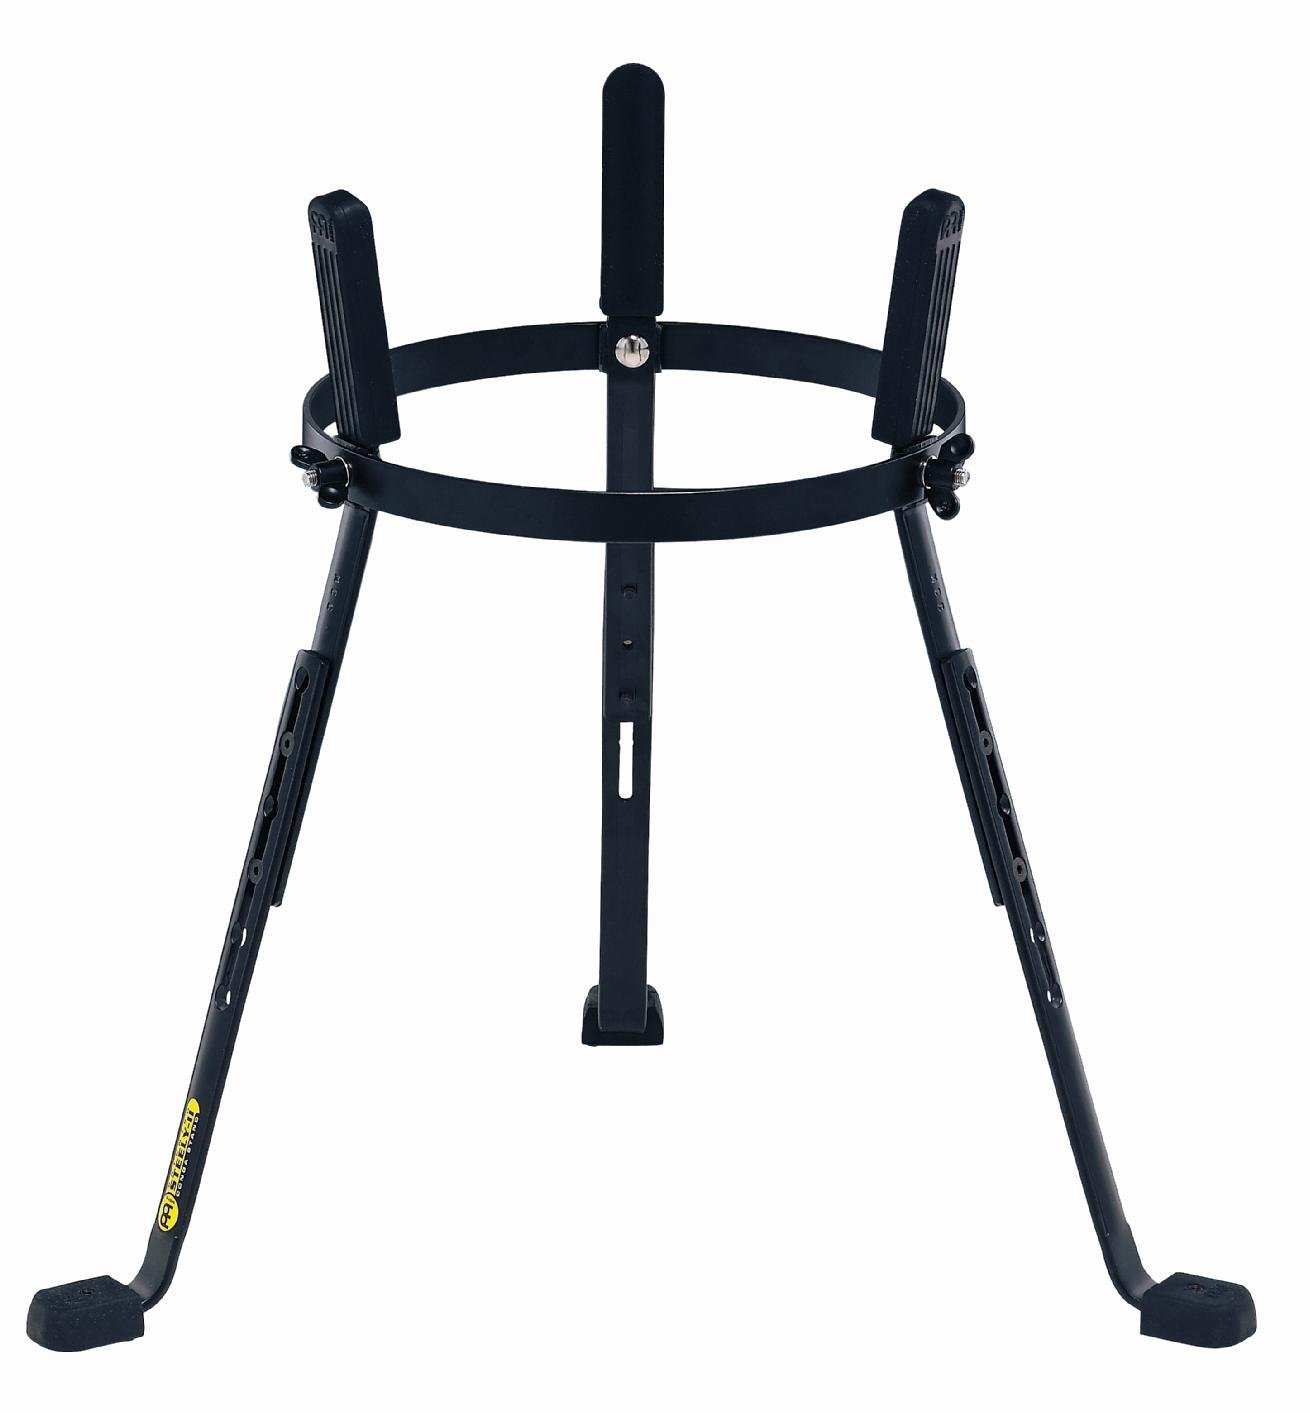 Meinl Percussion 11'' Conga Stand, Black Powder Coated Steel - NOT MADE IN CHINA - Arched Rubber Bracing for More Stability, Notches for Easy Adjustability, 2-YEAR WARRANTY (ST-MCC11BK)